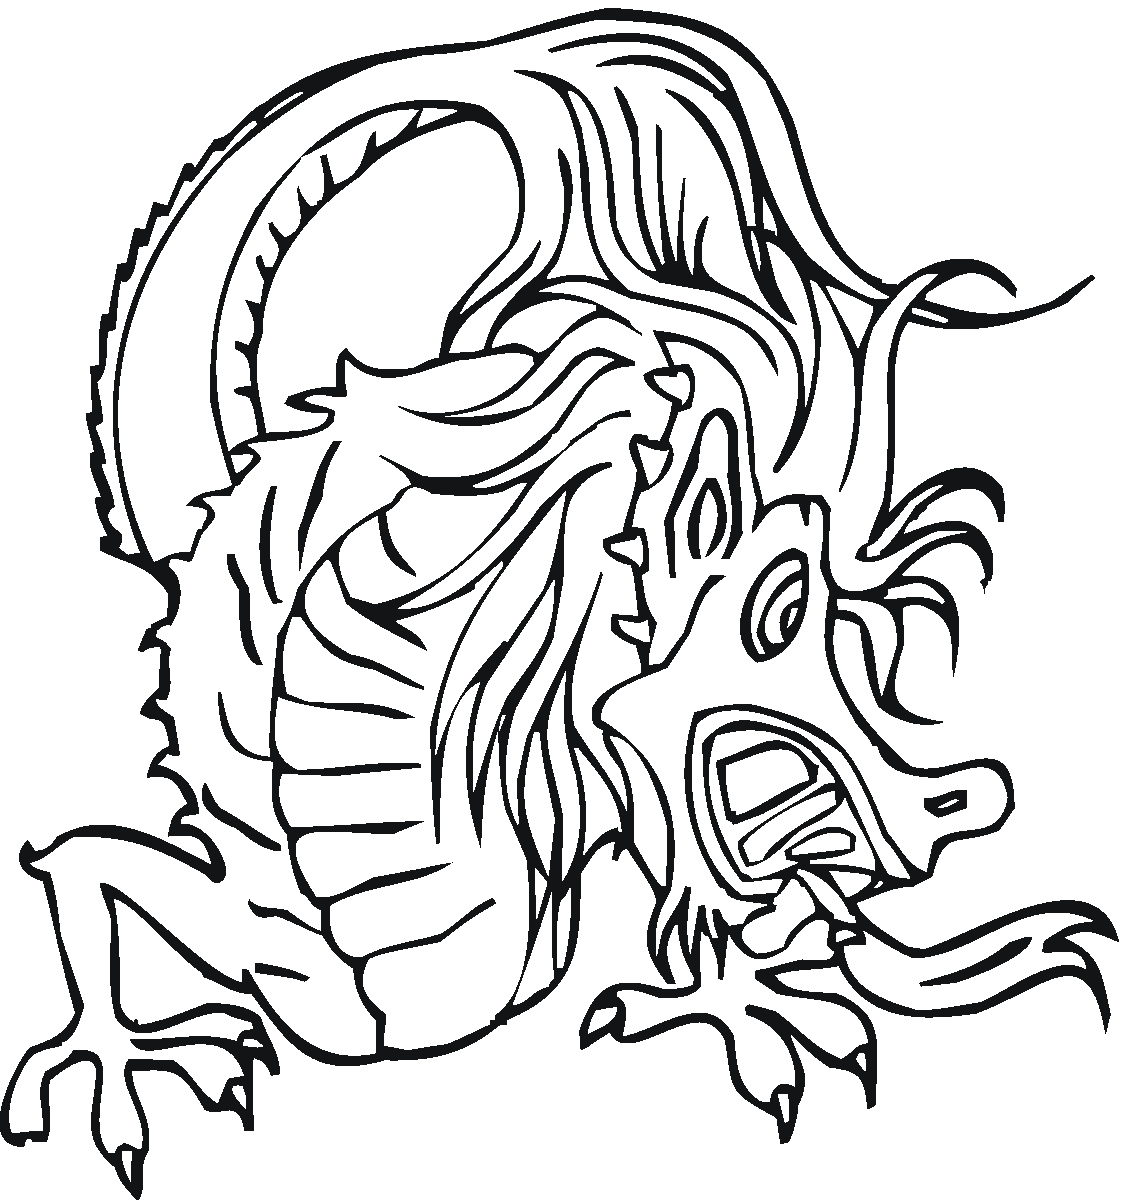 1126x1200 Coloring Pages Dragons New Free Printable Chinese Dragon Coloring